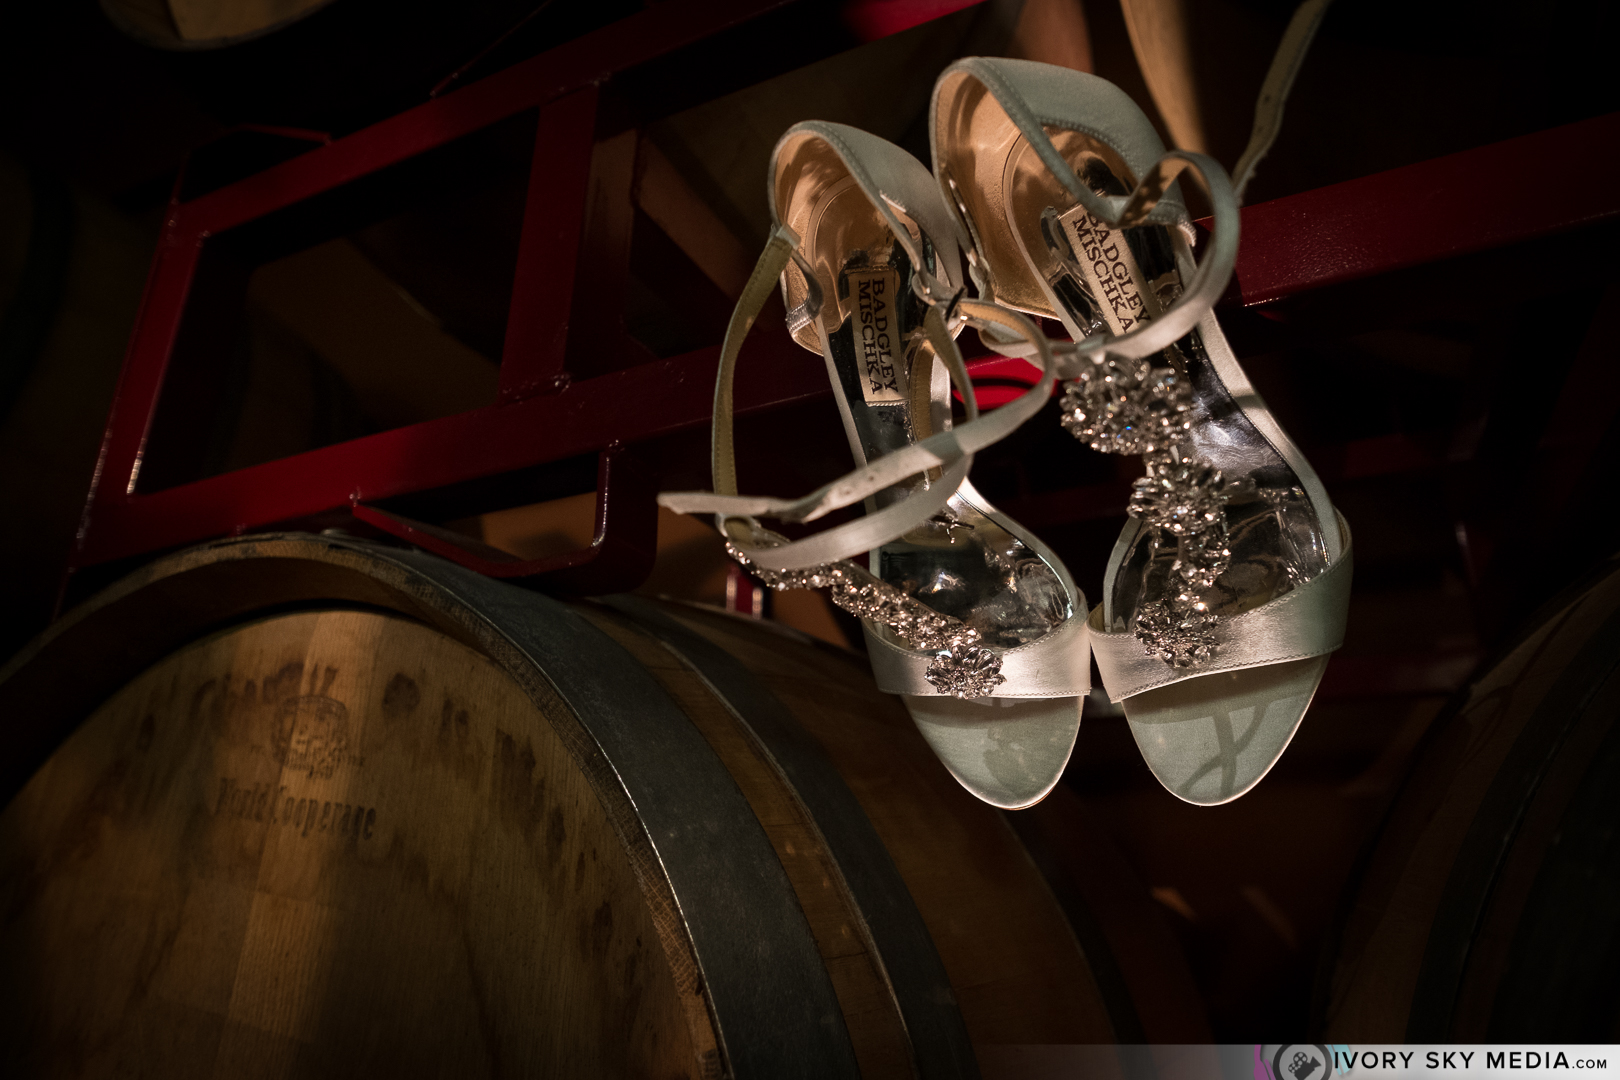 Wine and wedding shoes, don't mind if I DO.